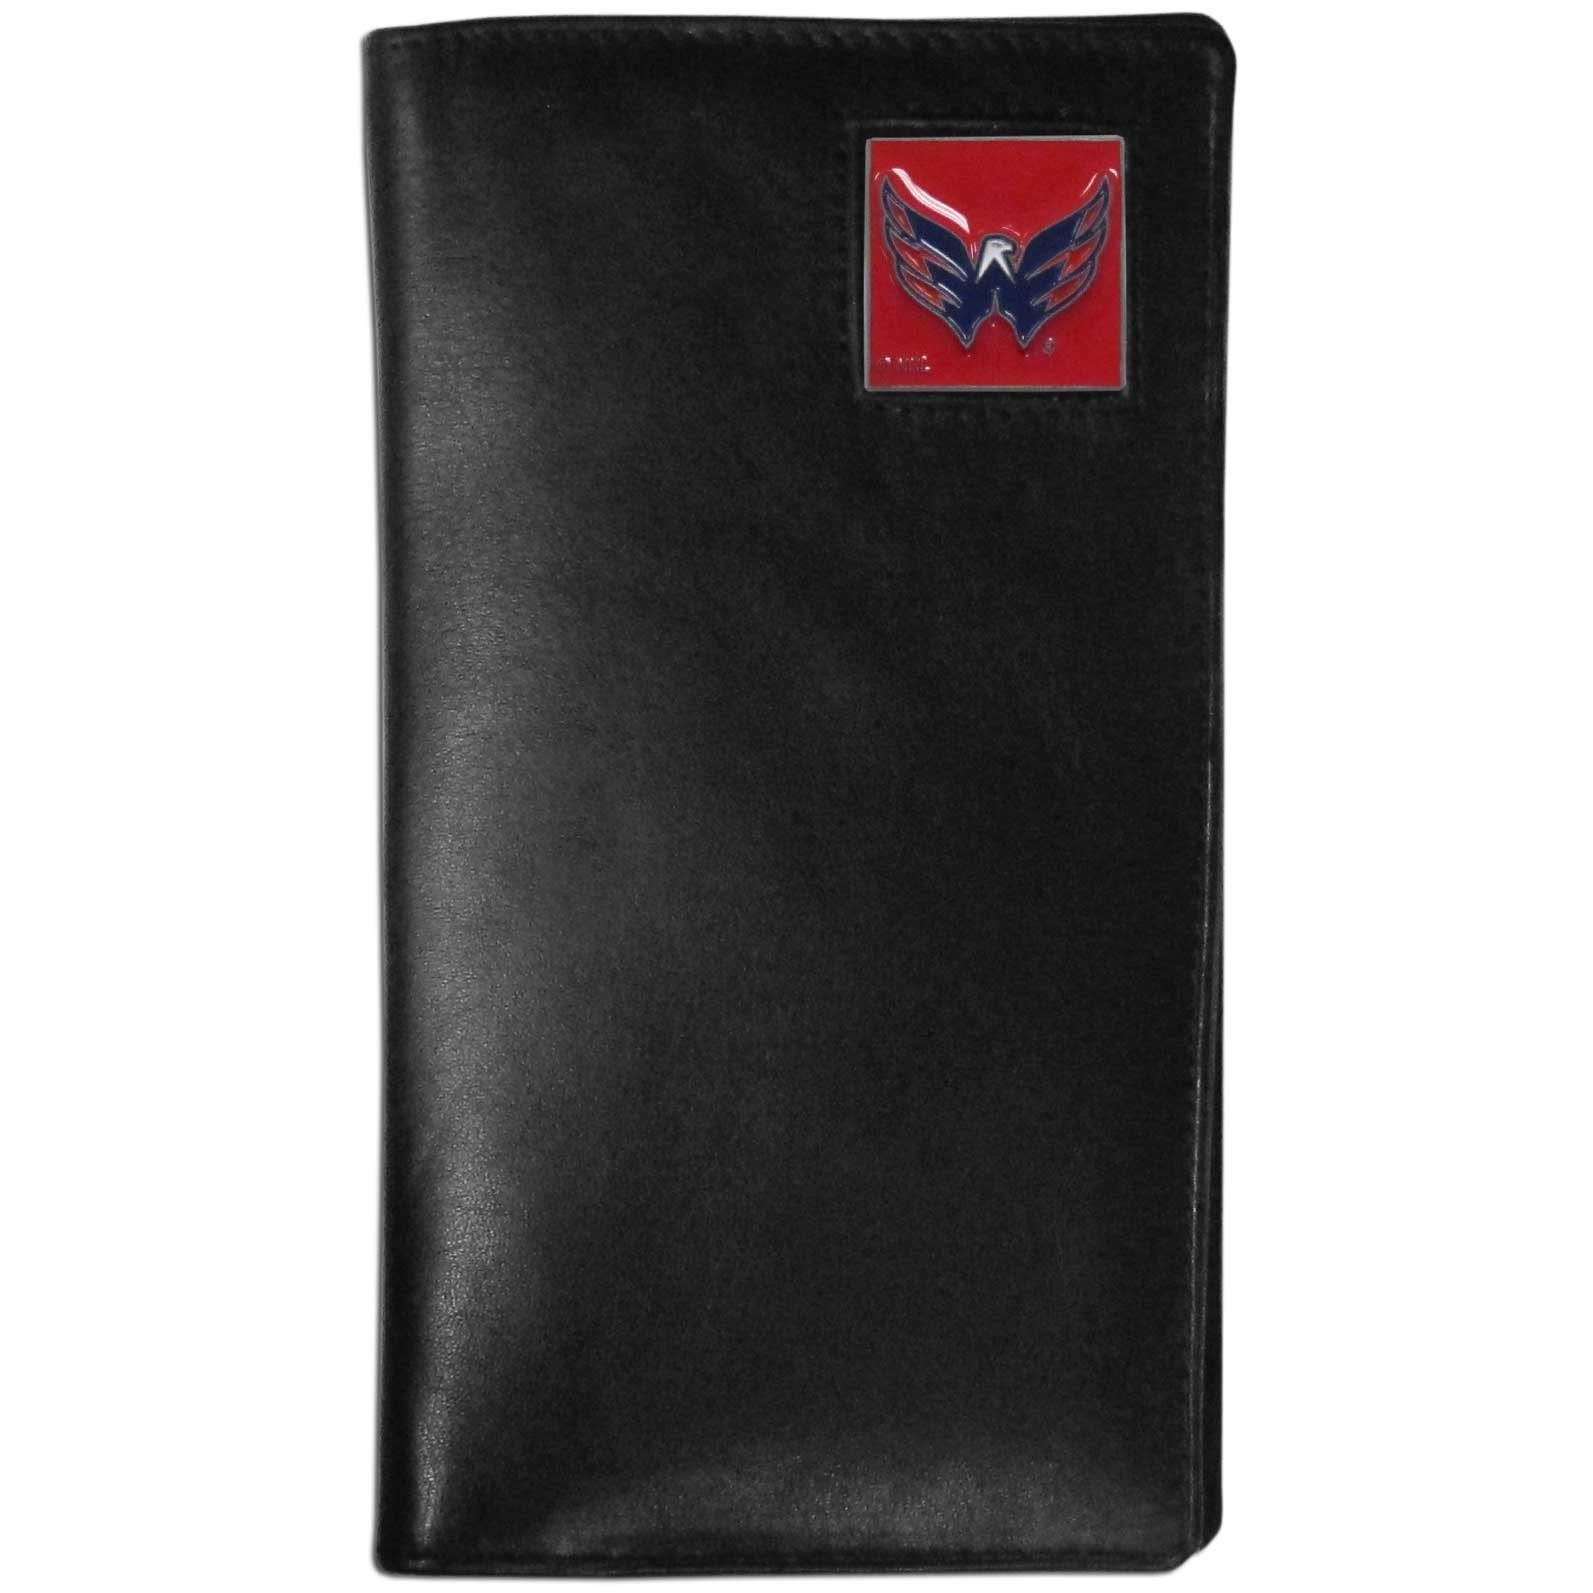 Washington Capitals Tall Leather Wallet - This officially licensed Washington Capitals tall leather wallet cover is made of high quality leather with a fully cast metal Washington Capitals emblem with enameled Washington Capitals color detail. The cover fits both side and top loaded checks and includes a large zippered pocket, windowed ID slot, numerous credit card slots and billfold pocket. Thank you for visiting CrazedOutSports